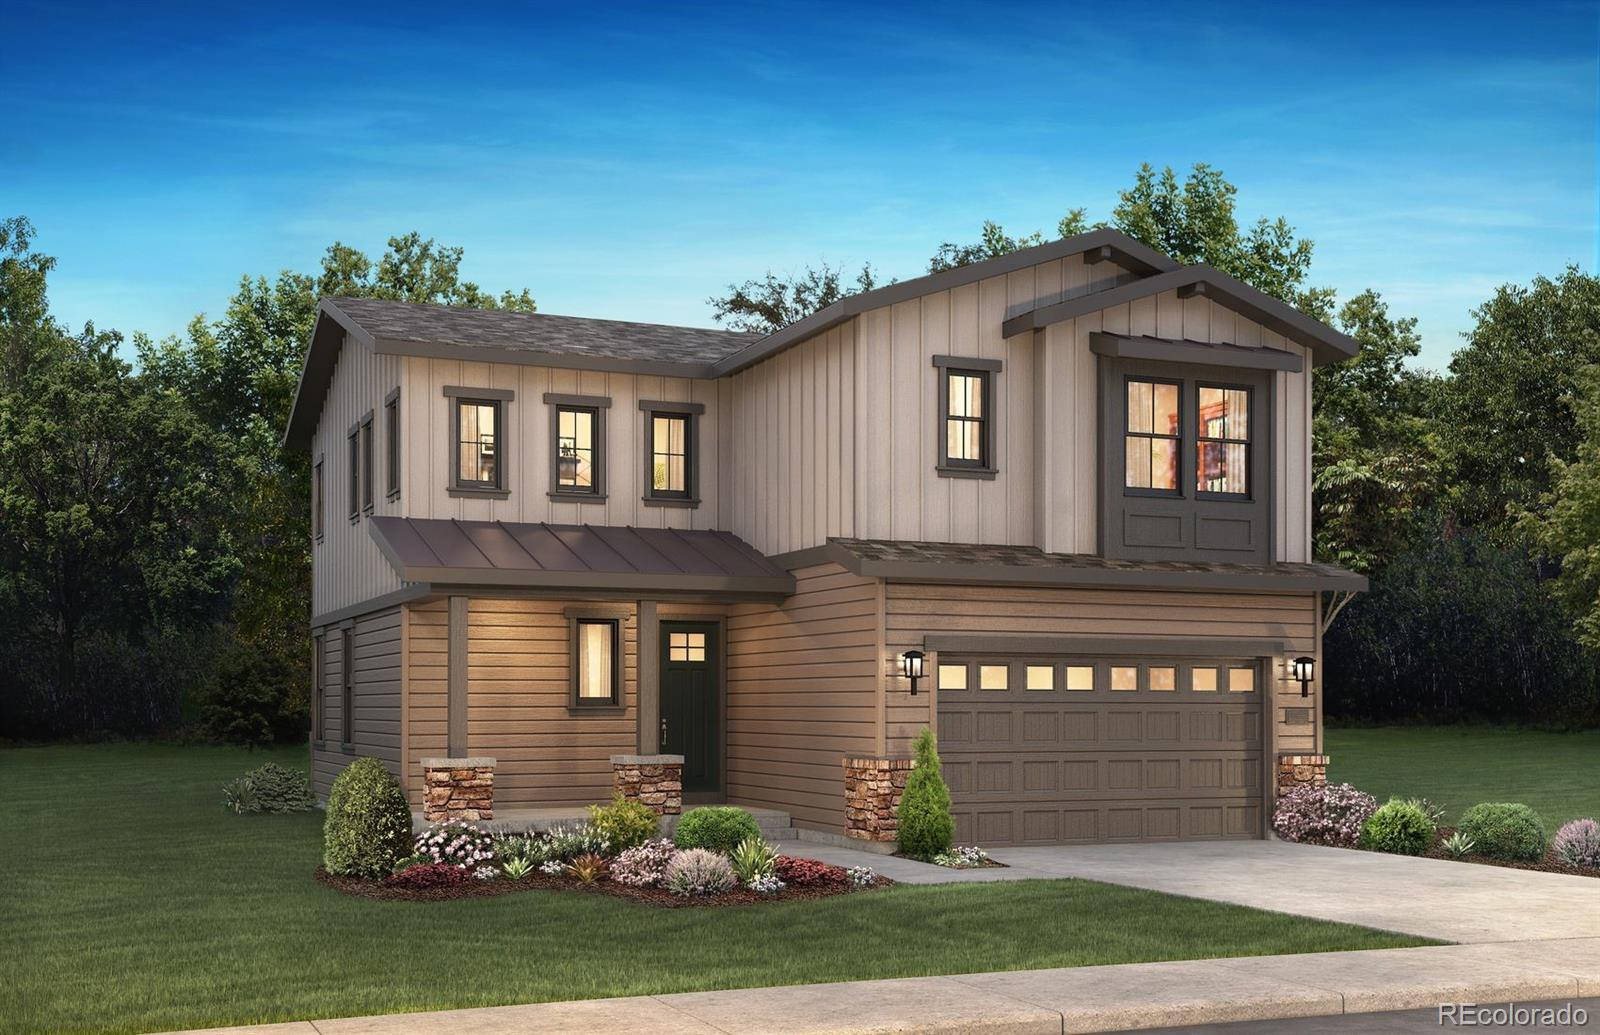 Available August/September 2020 - Beautiful Destiny 2-story in the brand new Solstice community. This stunning home is an open concept floorplan and features 3 beds, 2.5 baths, great room, dining room, kitchen, unfinished basement and 2 car garage.  Stunning design finishes and upgrades throughout including large kitchen with island & walk-in pantry, GE Profile stainless steel appliances, Yorktowne Henning Earl Grey cabinetry, Pental Cotton White engineered kitchen perimeter & master bath counters, Montclair White engineered stone kitchen island counter, Shaw Supino Calcare wood-style laminate floors;  Barn door at master bath & laundry; spacious loft; great room with cosmo fireplace, 2x10 Castle Brick Grey tile fireplace surround with mantel; tile floors in the baths & laundry room; covered front porch and patio. Energy Star Certified. This stunning home thoughtfully combines elegance and luxury and energy efficiency. Don't miss your opportunity. Welcome Home!